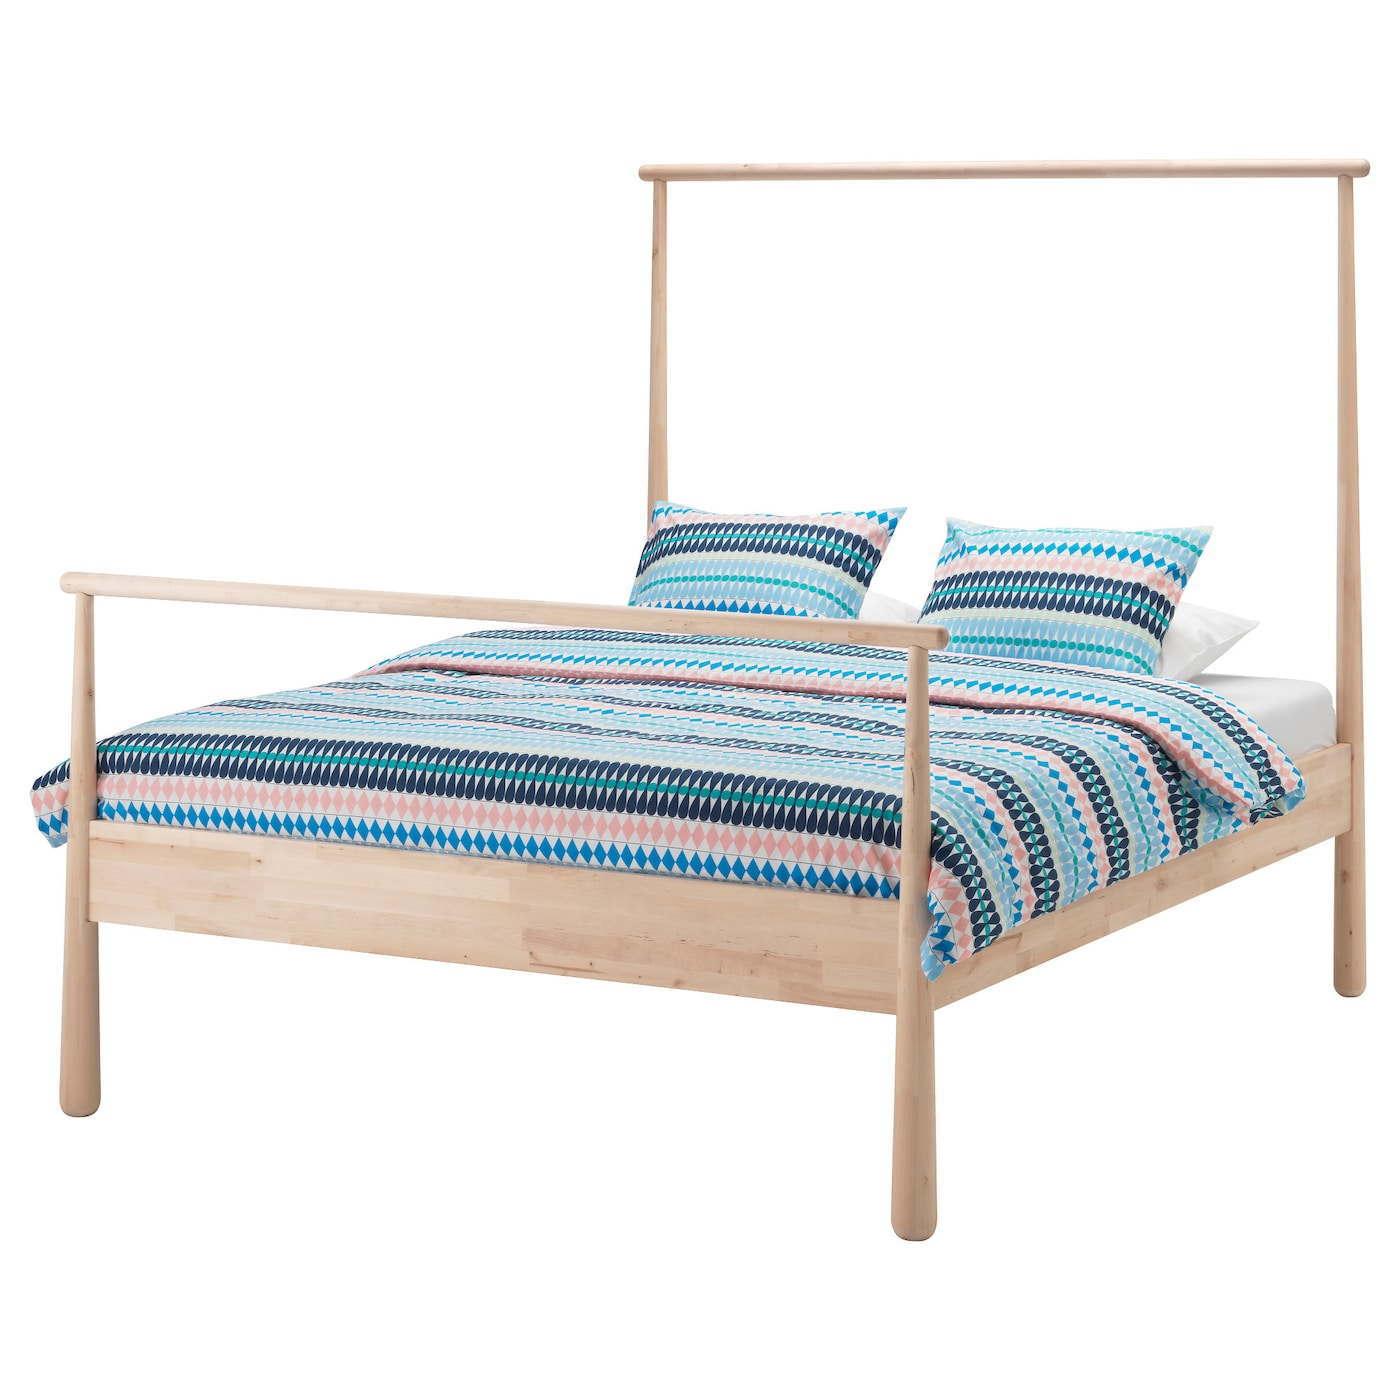 Gj ra bed frame birch lur y standard double ikea for Full size bed ikea